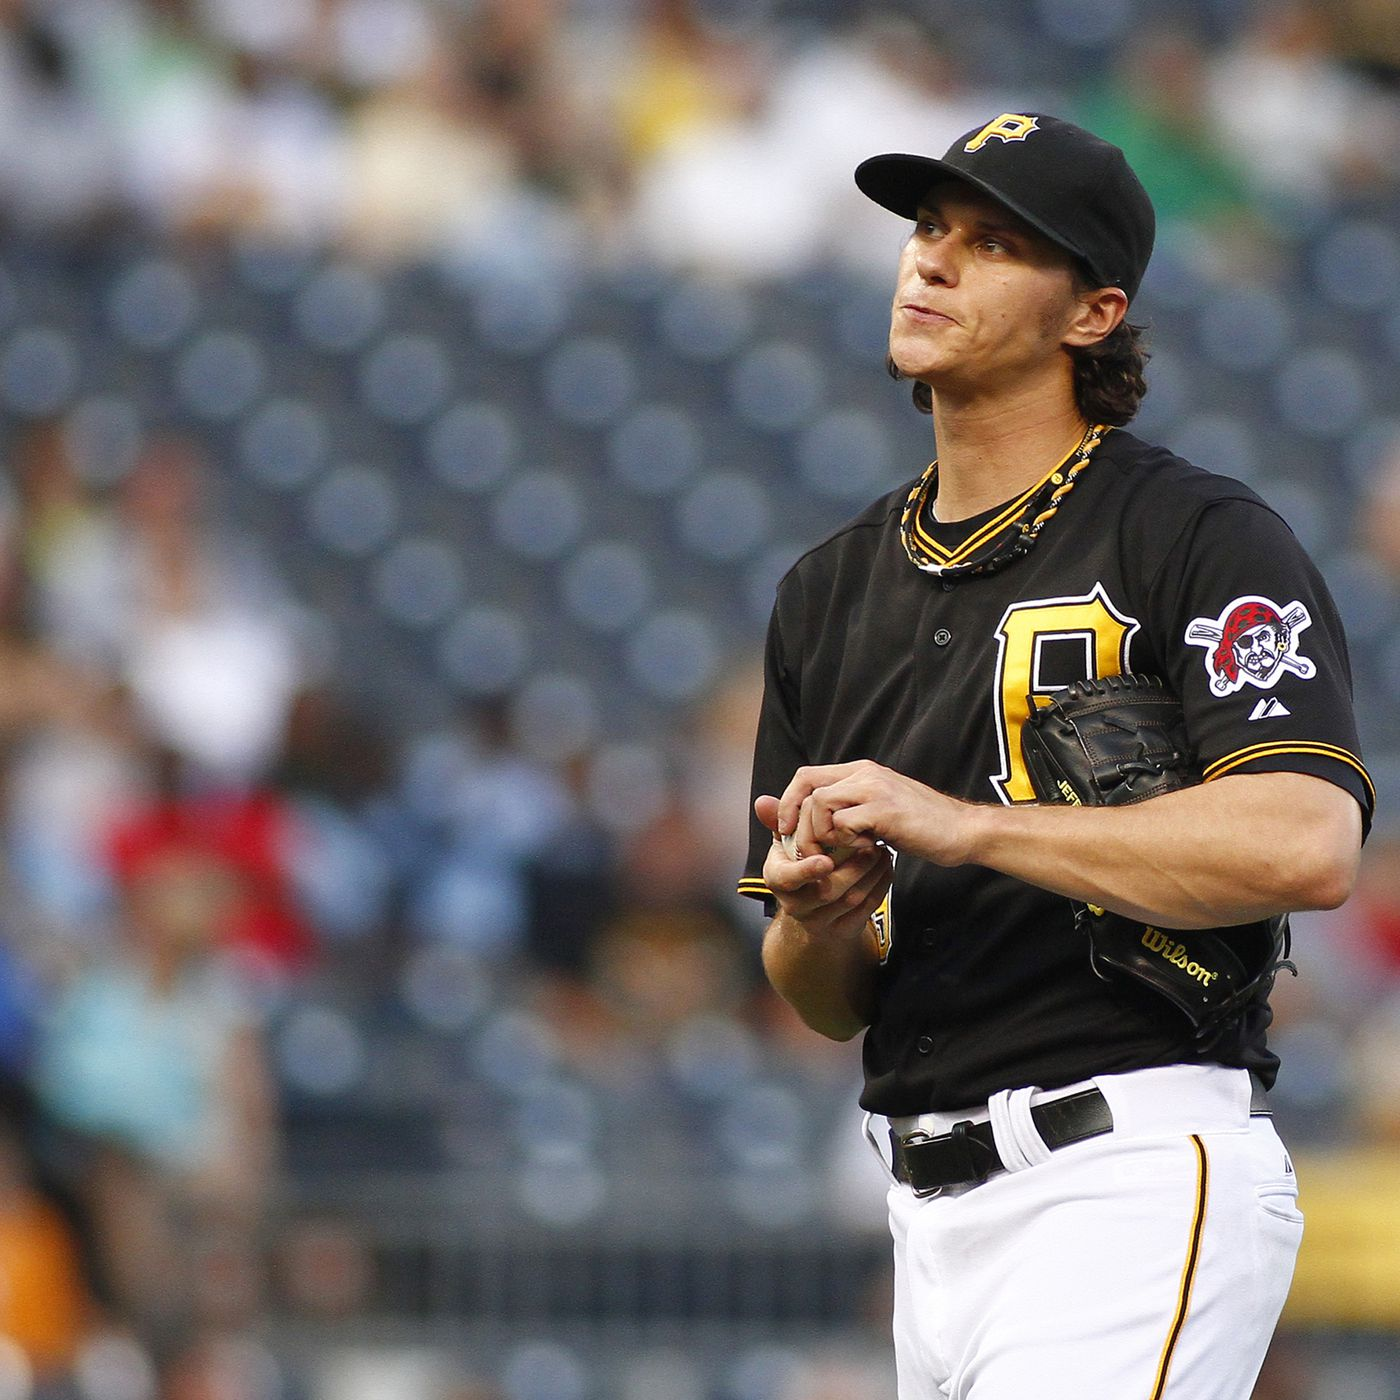 Has Jeff Locke pitched himself out of Pirates rotation? - SBNation.com